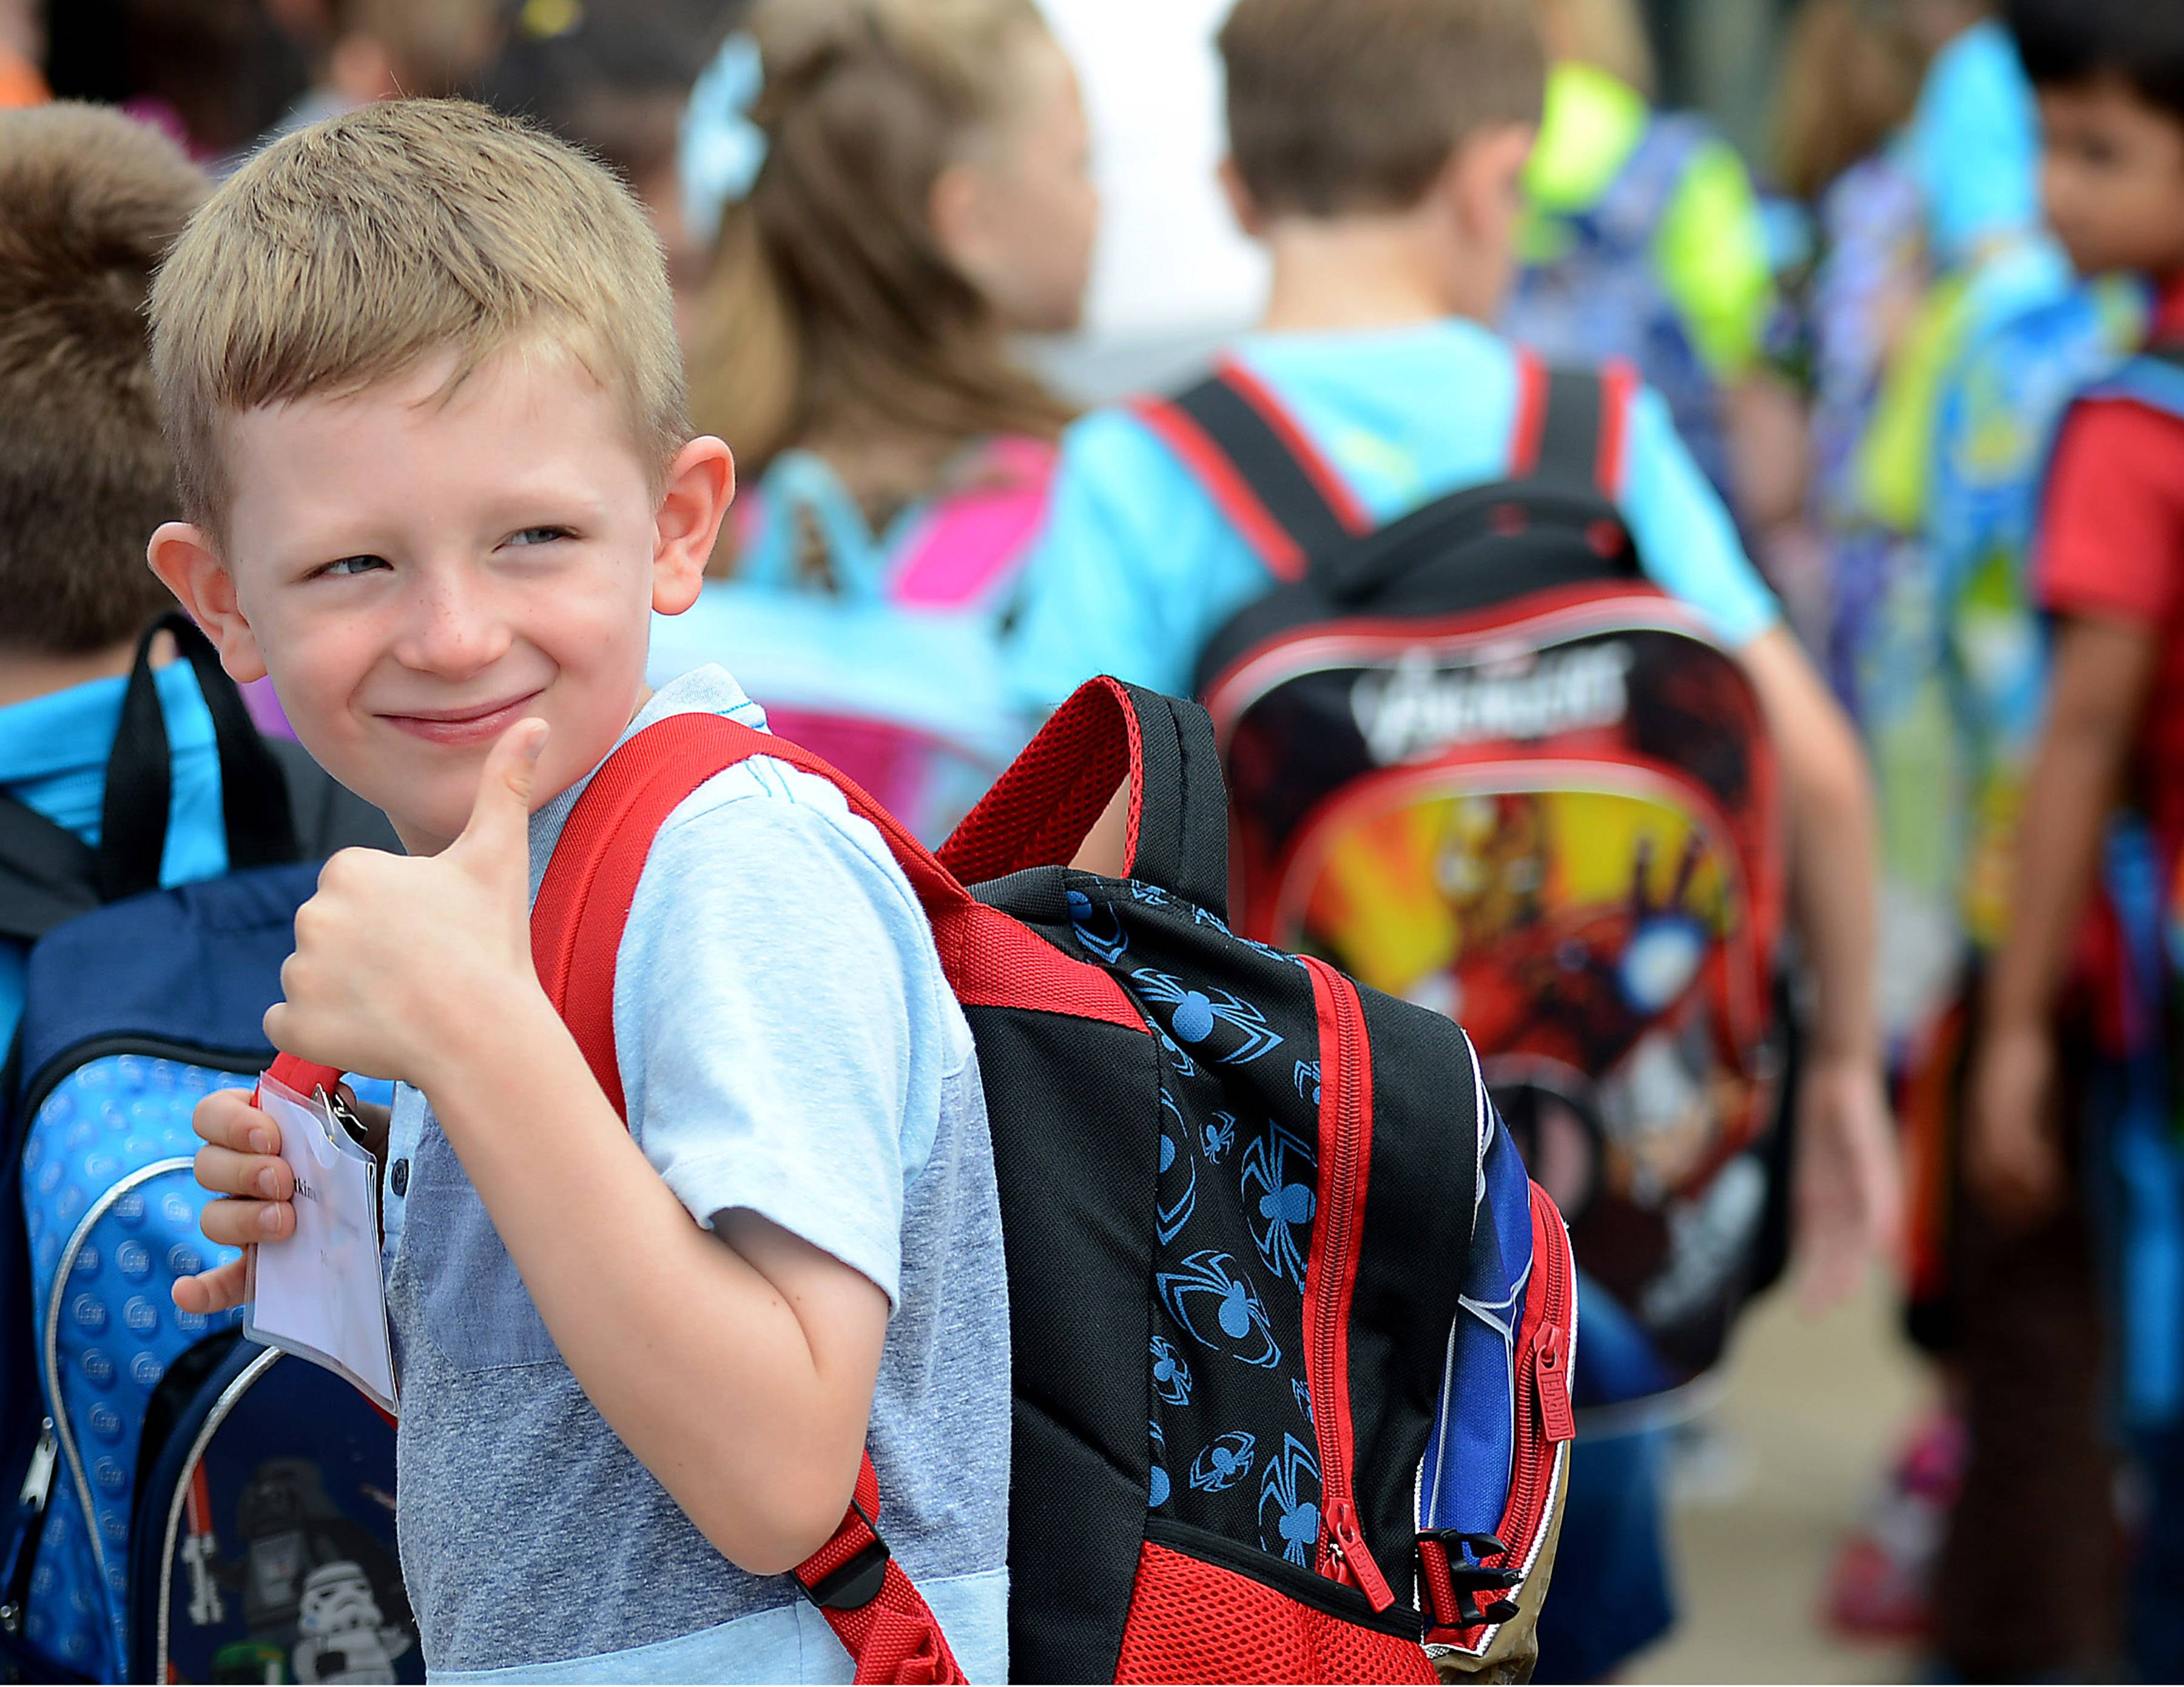 Jack Atkins gives a quick look back and thumbs-up to his parents before filing in for his first day of kindergarten at Prairie View Elementary School in Elgin Wednesday.